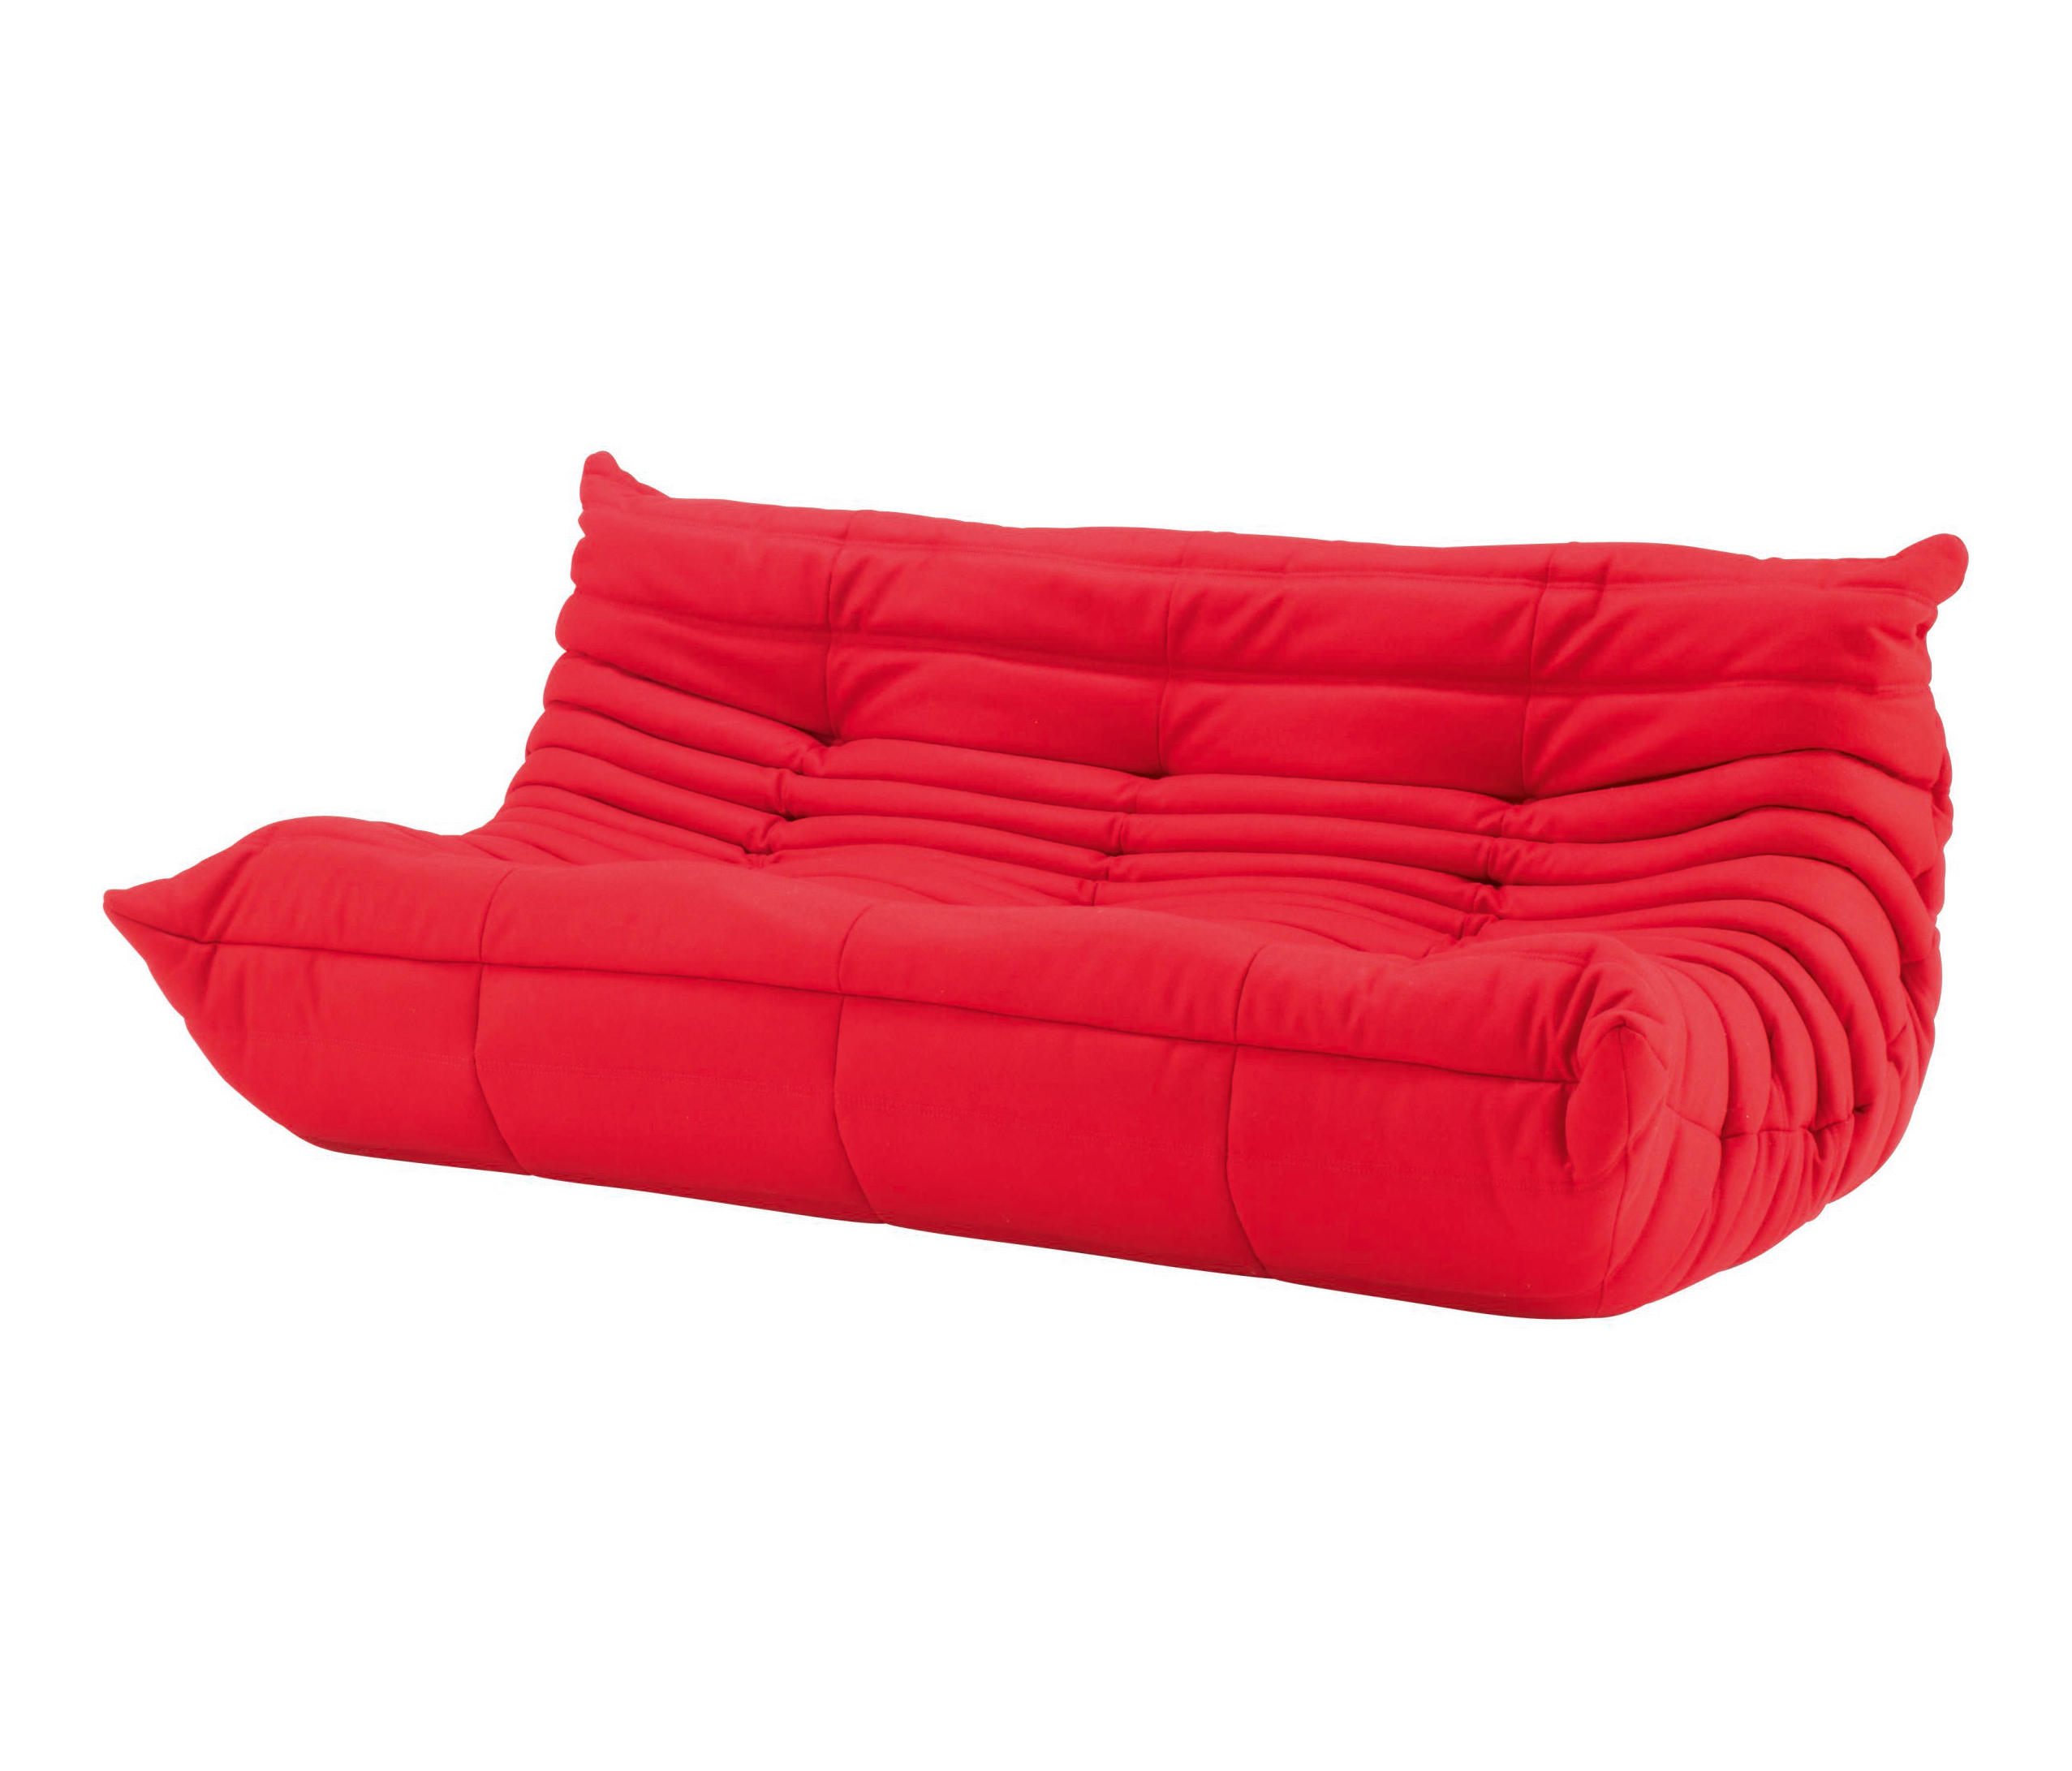 Togo Large Settee Without Arms By Ligne Roset Sofas